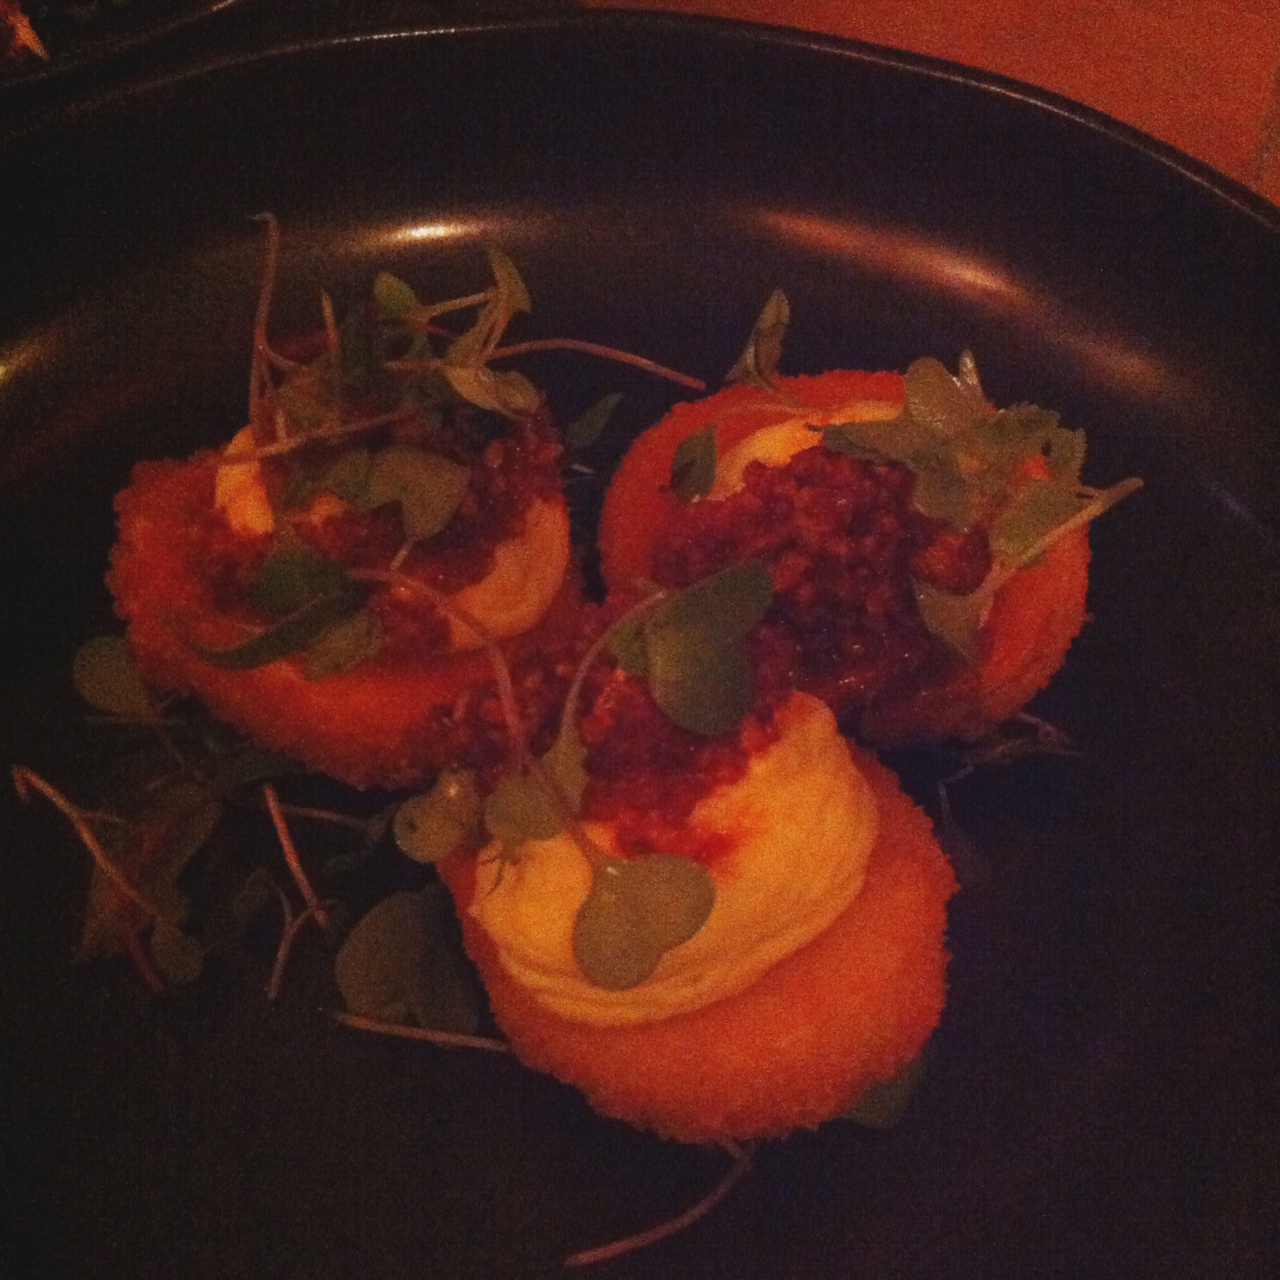 Fried Deviled Eggs, Tuome